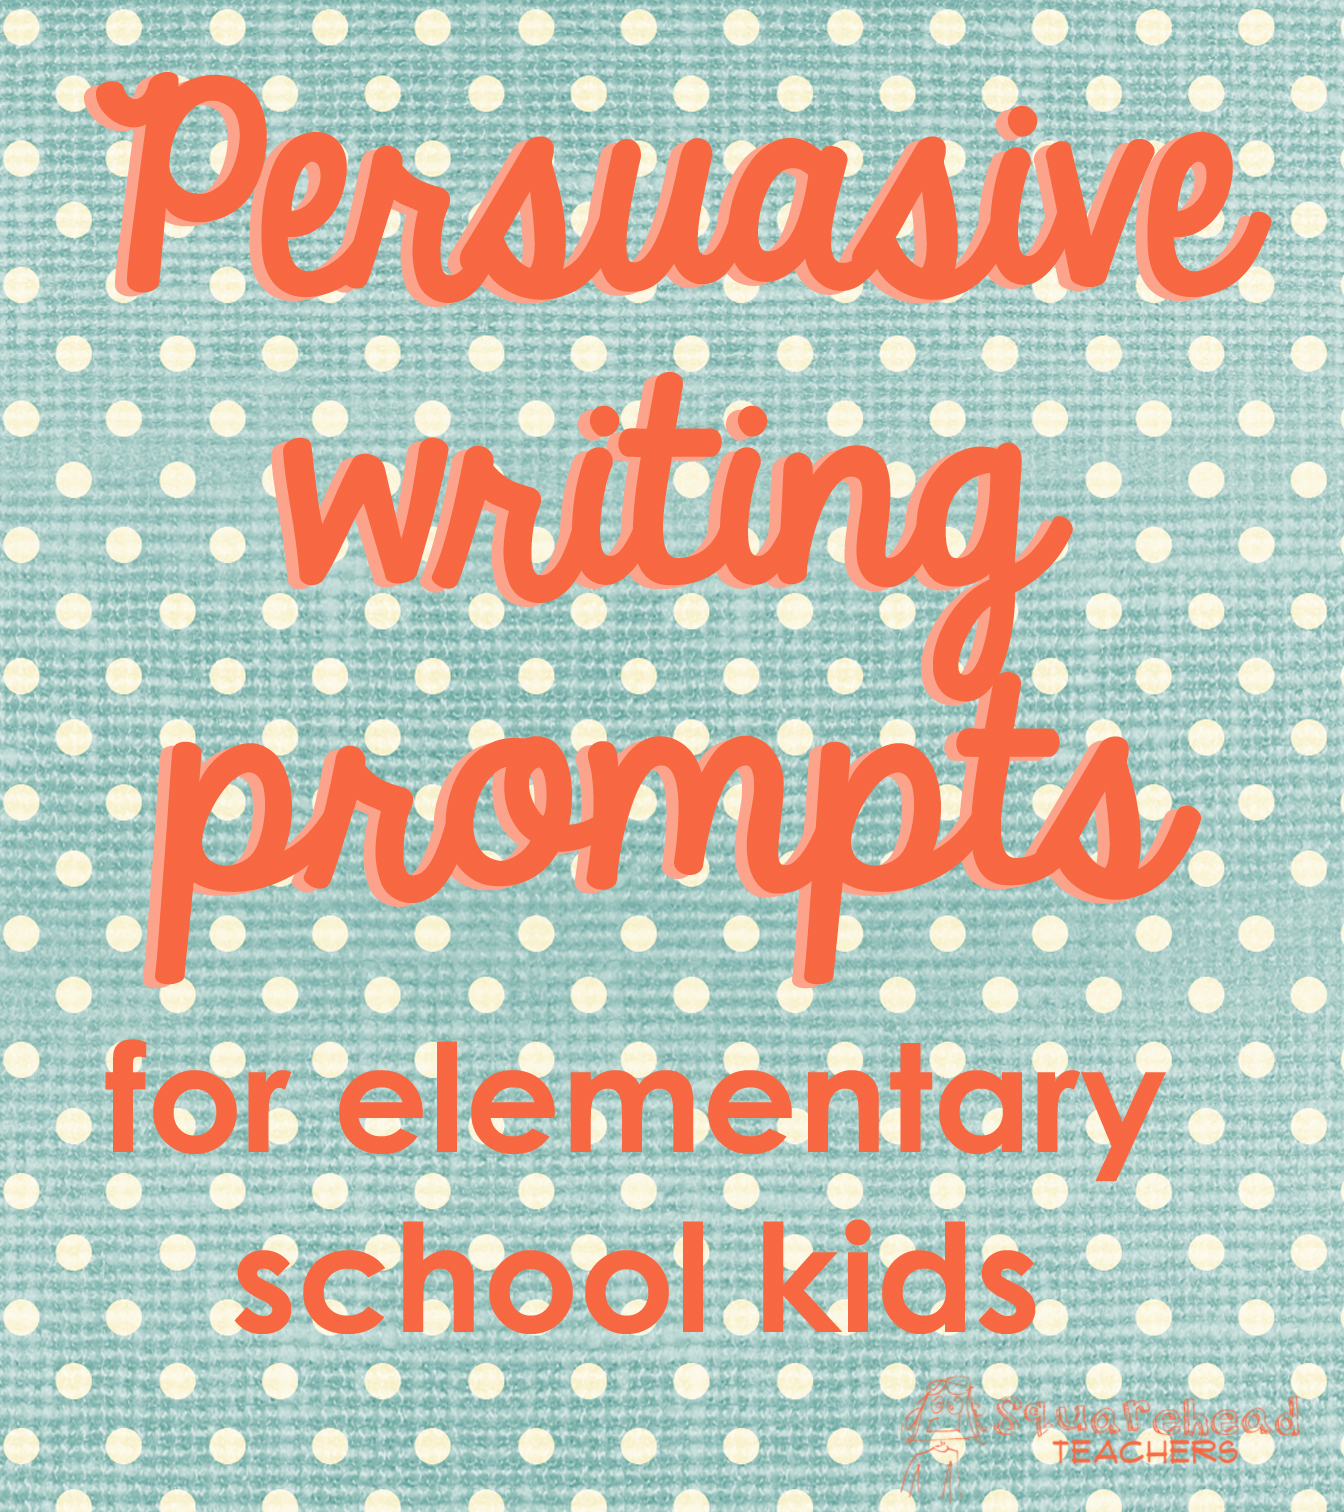 Persuasive Writing Prompts For Elementary School Kids  Squarehead  Persuasive Writing Prompts For Elementary School Kids